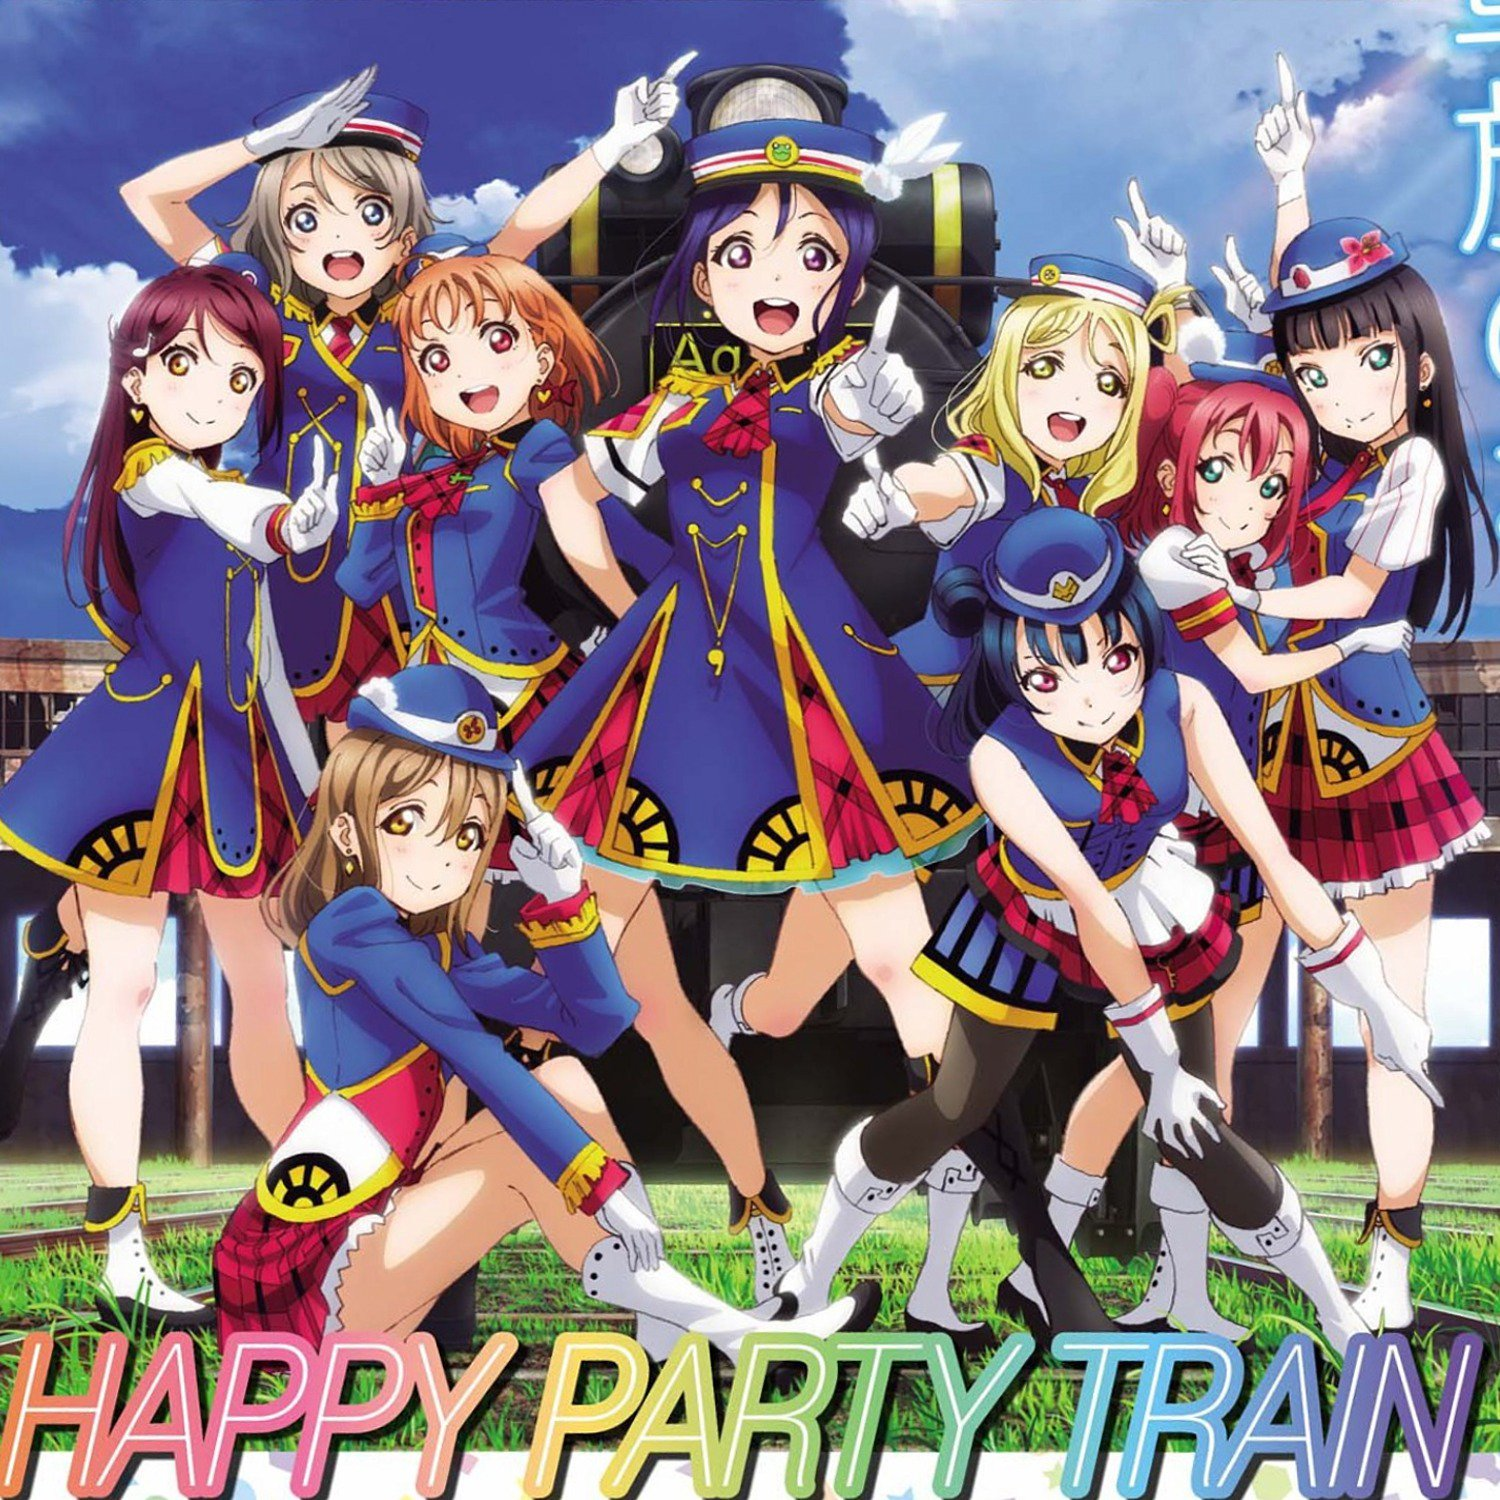 러브라이브 - Happy Party Train!